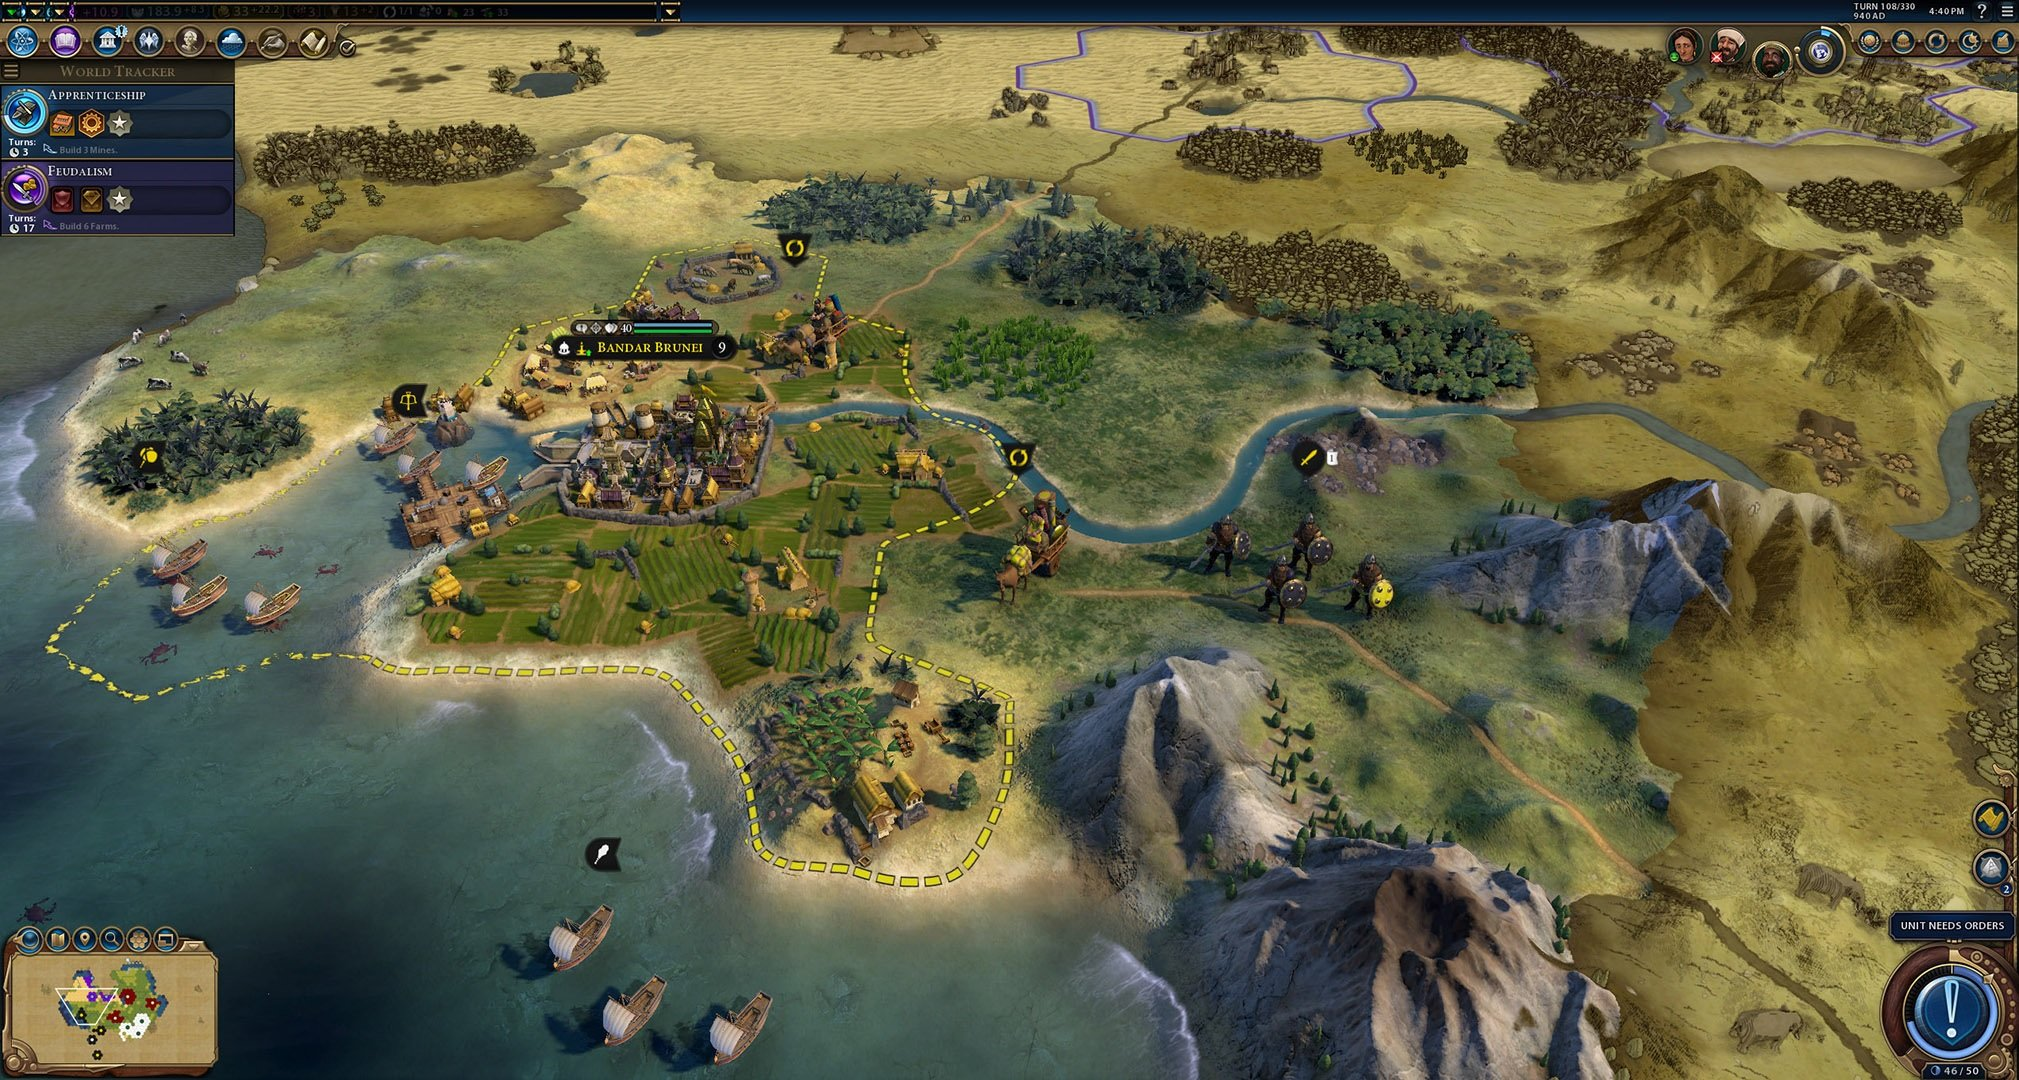 This Civilization VI mod changes the graphics to look like Civilization V